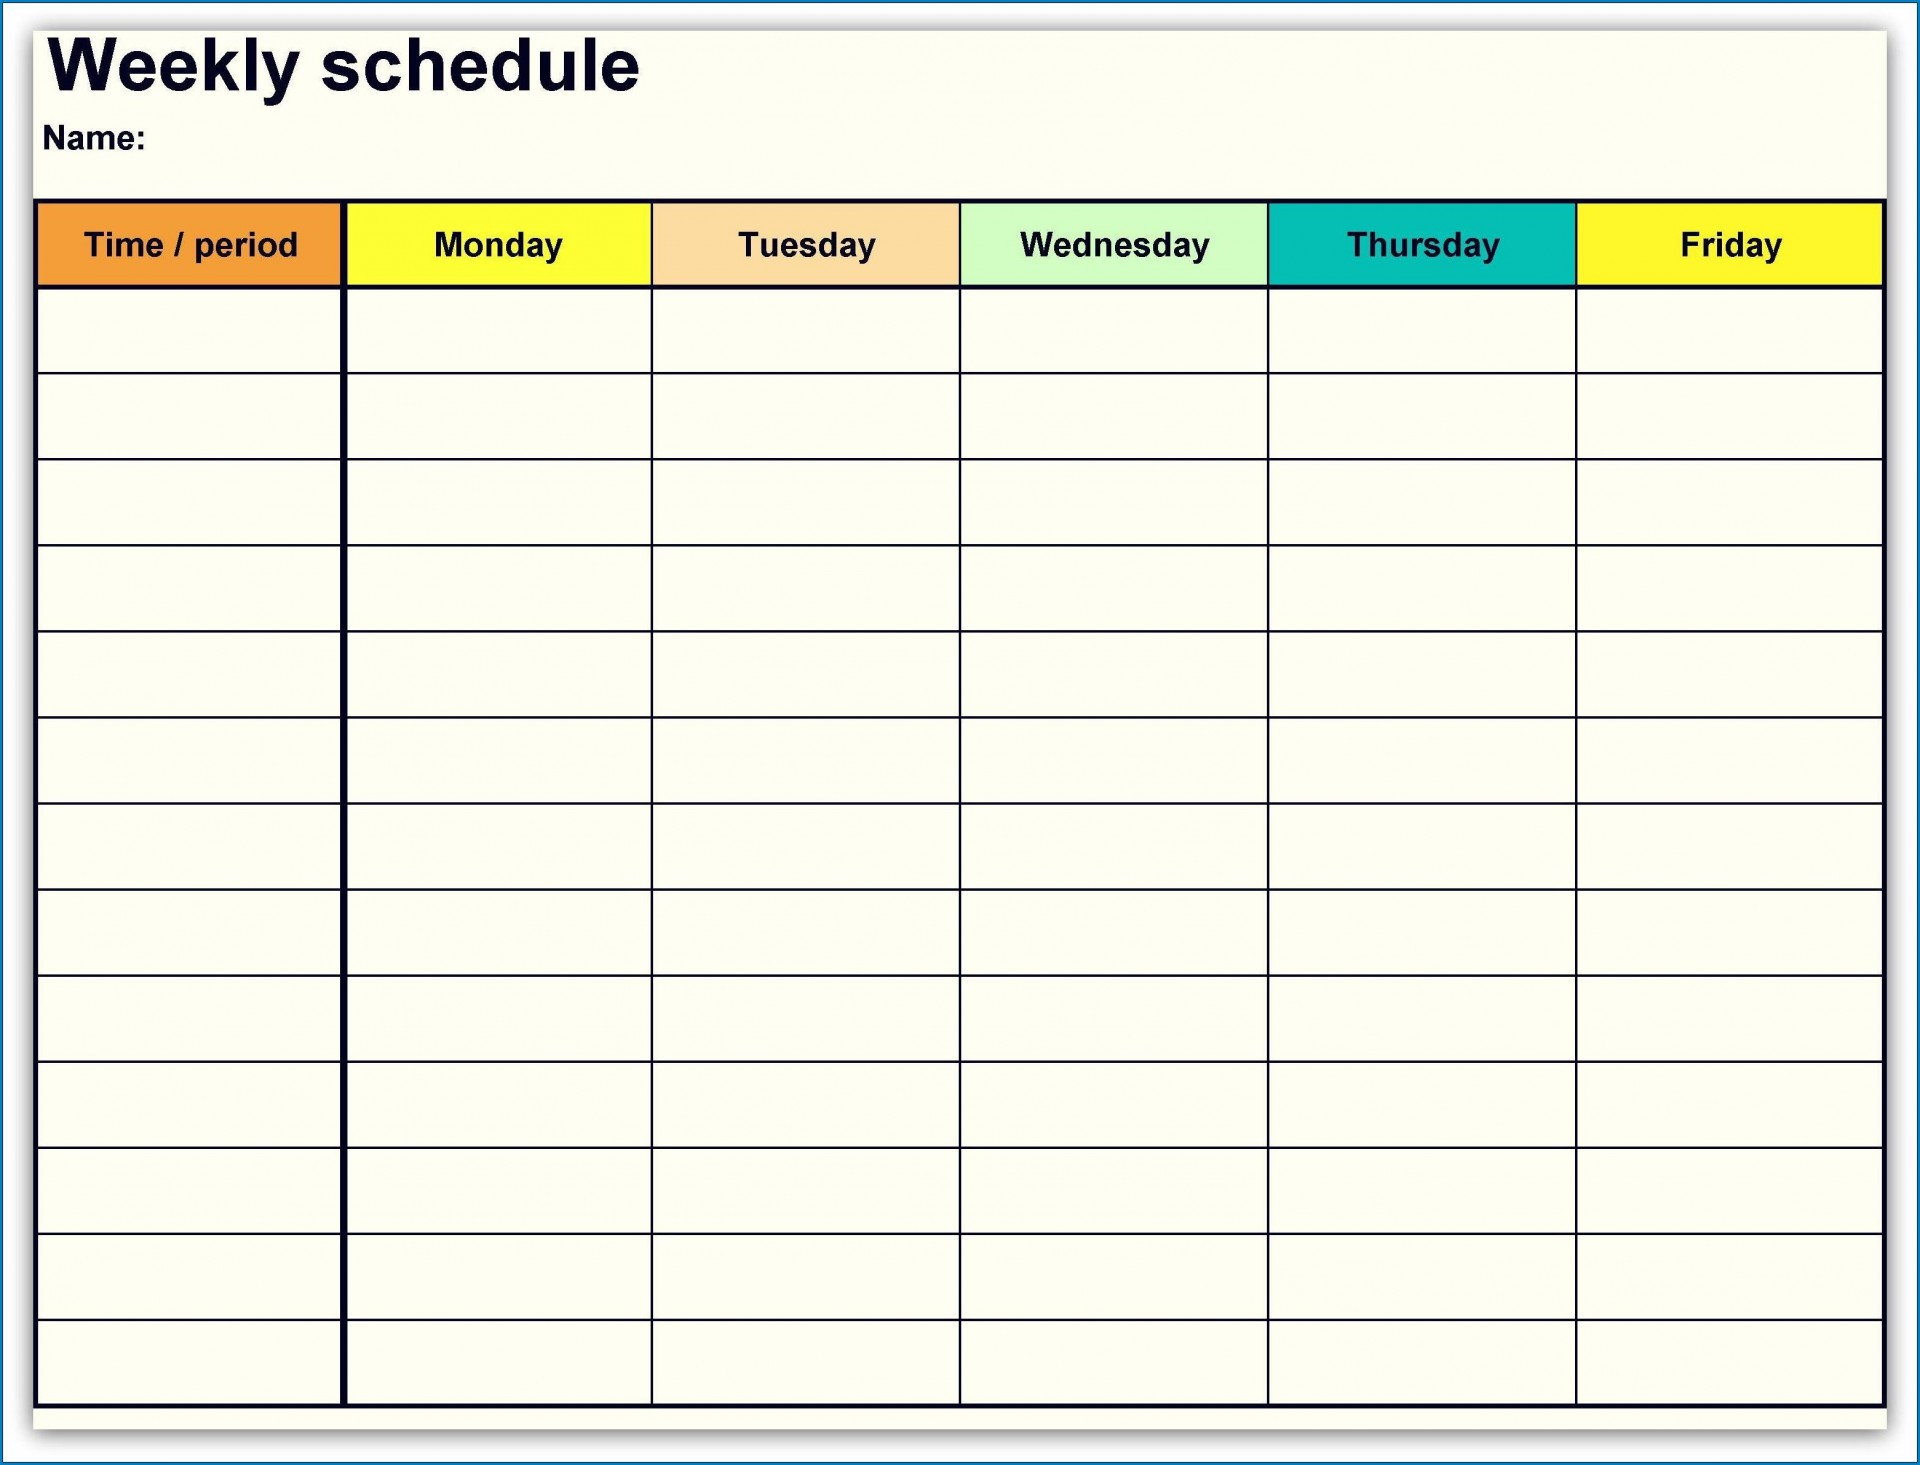 004 Impressive Free Weekly Calendar Template Image  Printable With Time Slot 2019 Word1920